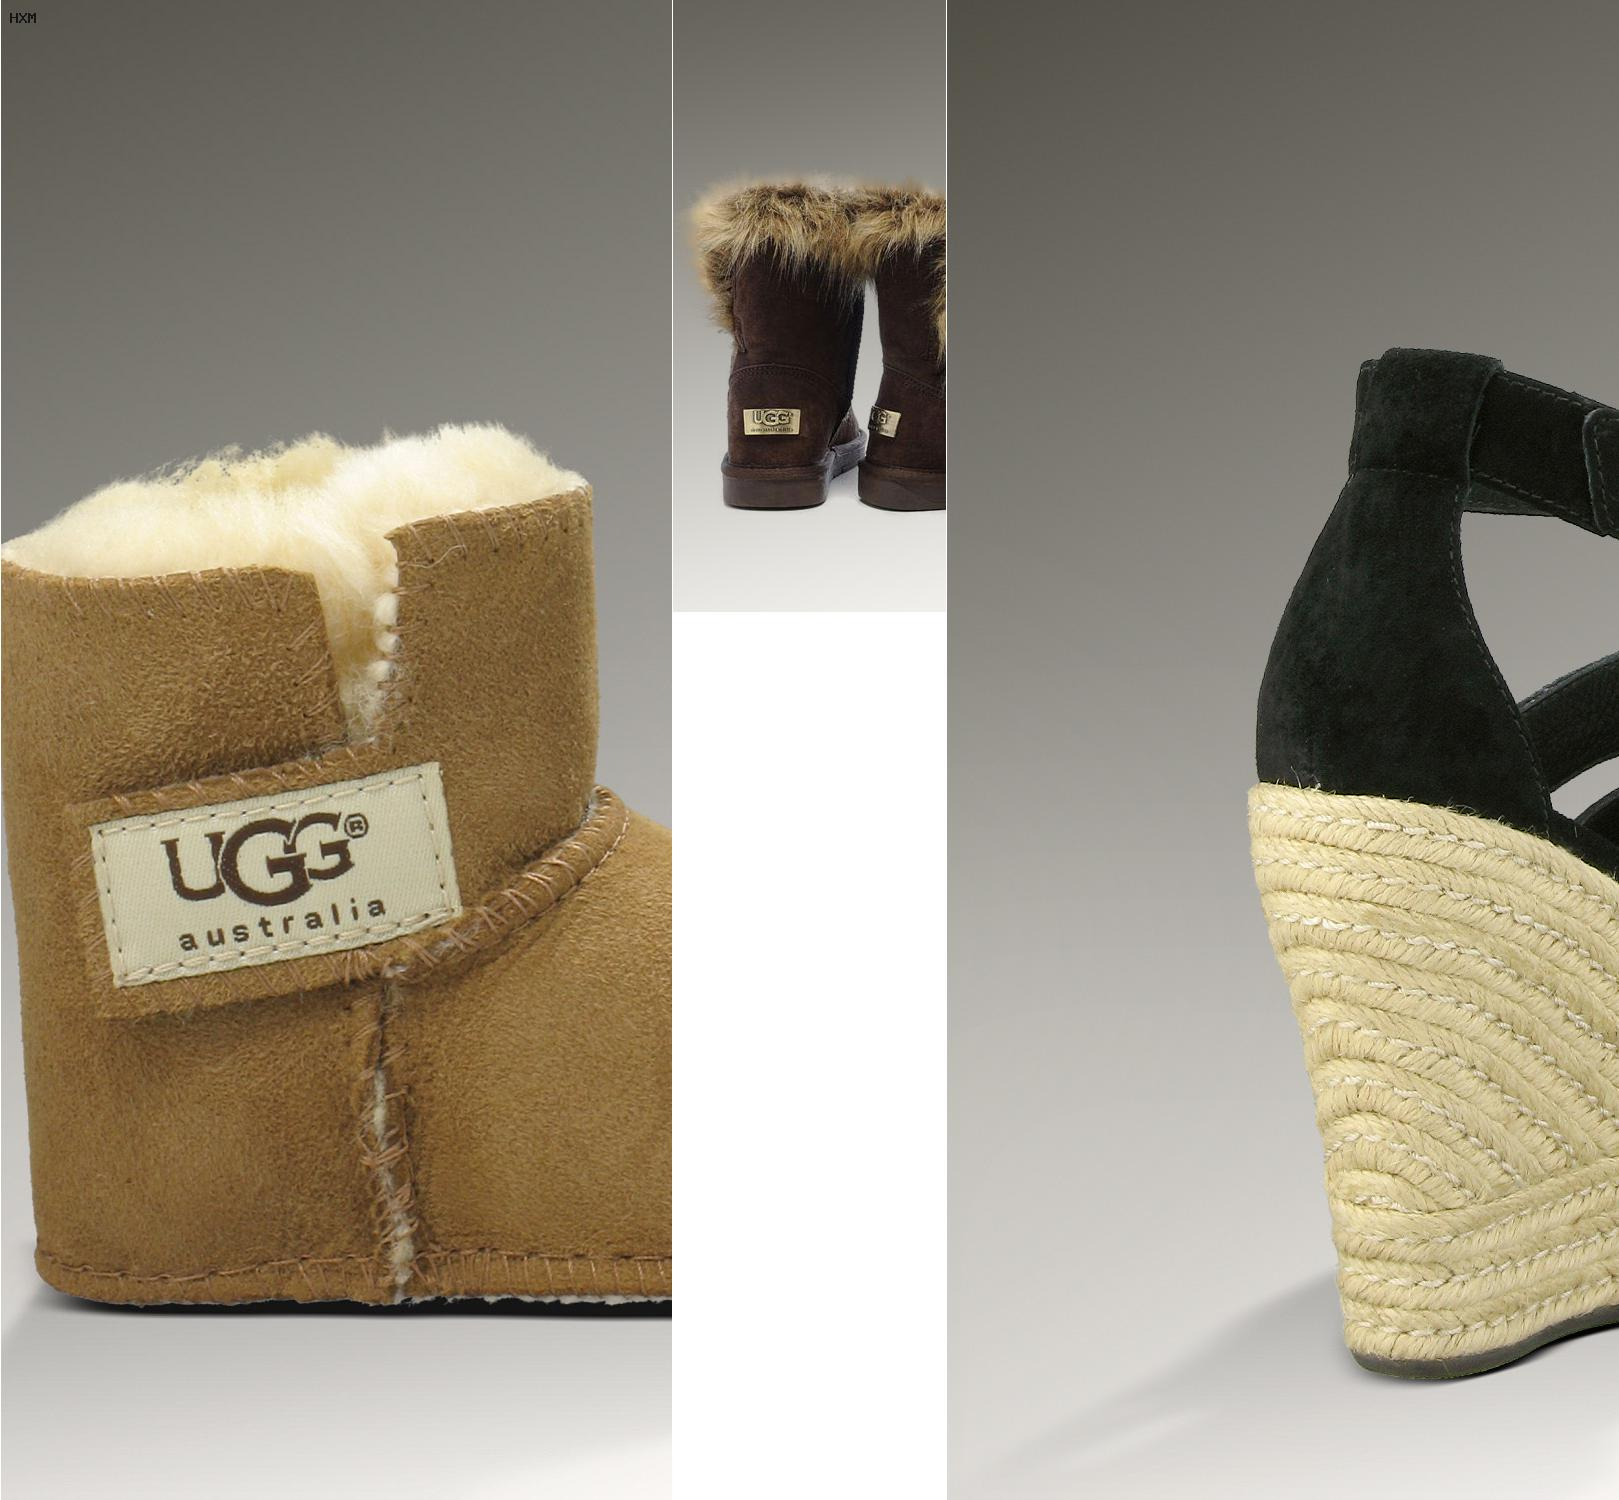 botte lacoste facon ugg